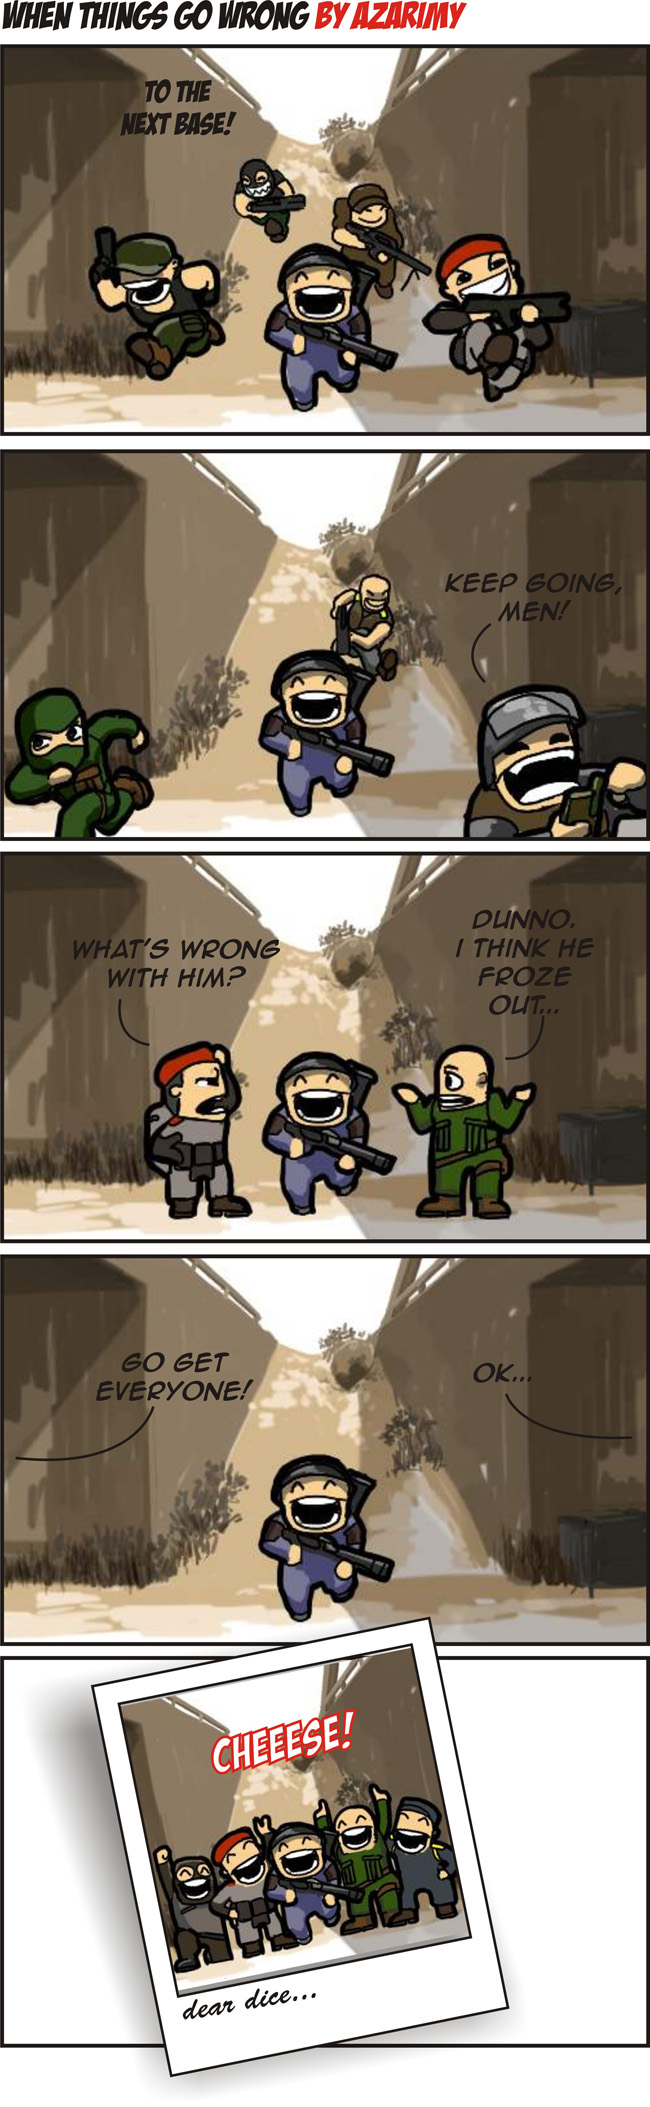 BFBC2: When things go wrong by azarimy